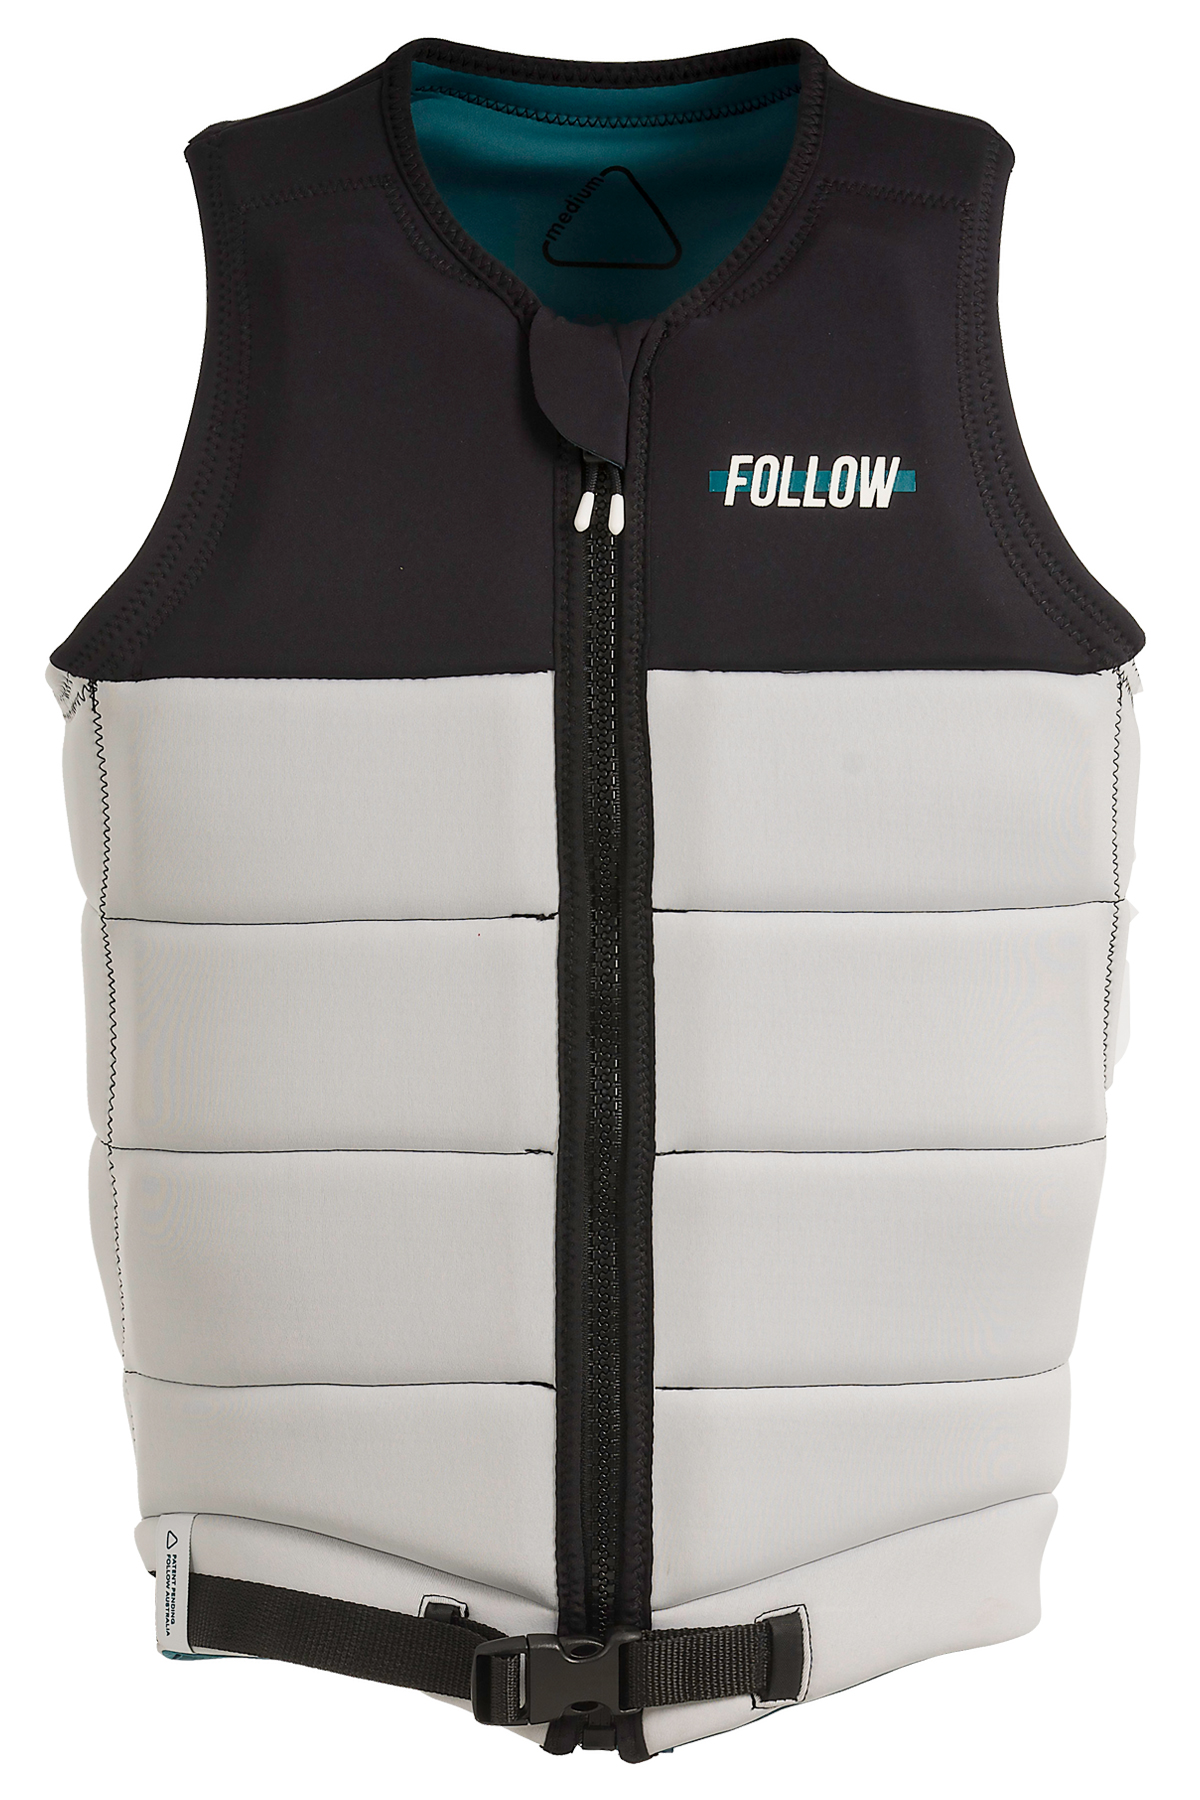 AXE IMPACT VEST - WHITE FOLLOW 2019